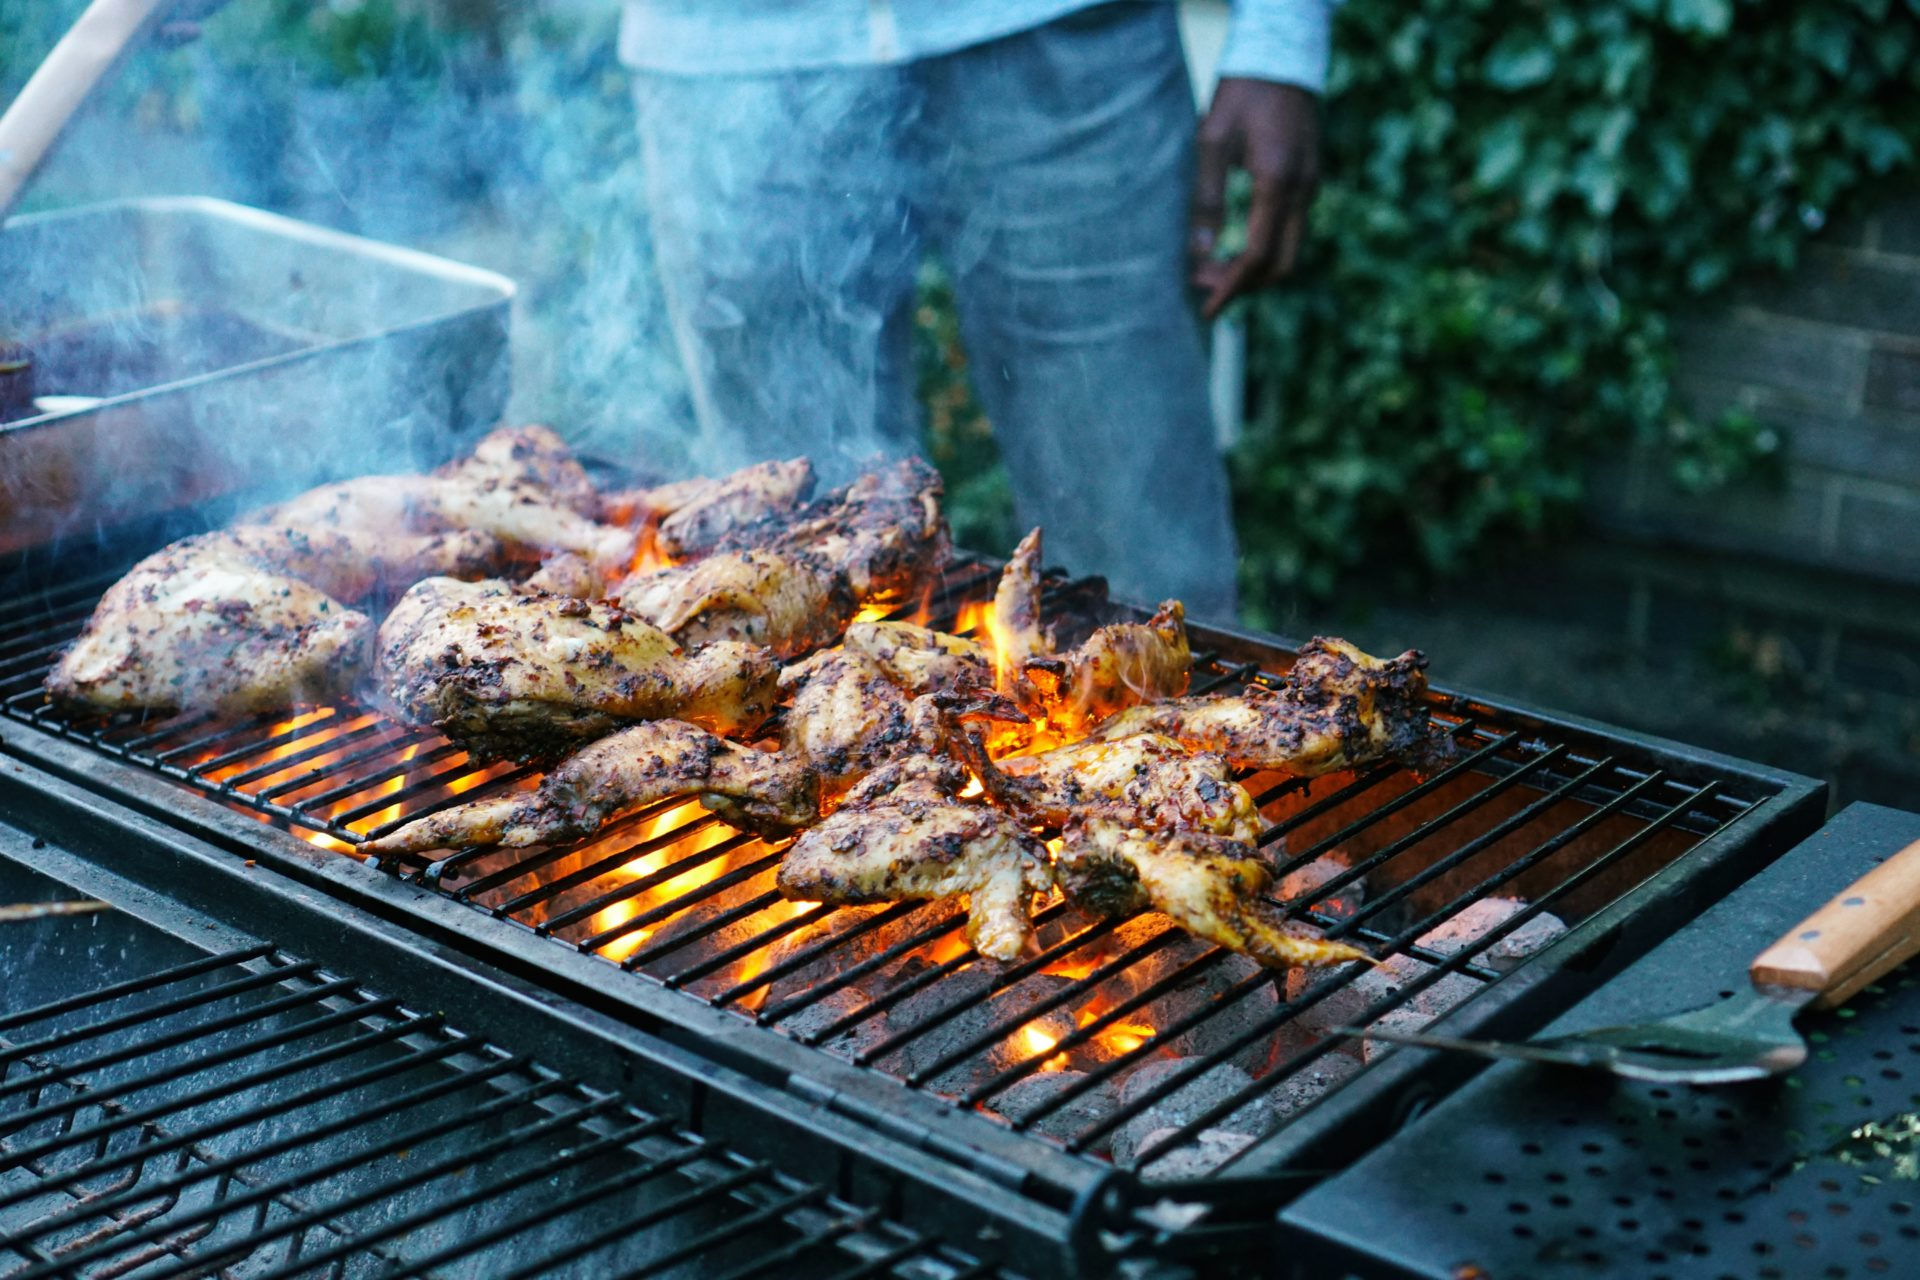 Up your braai game this Heritage Day with delicious recipes from two local foodies, Unaty Daniel and Justin Bonello. Photo: Carnivore Style